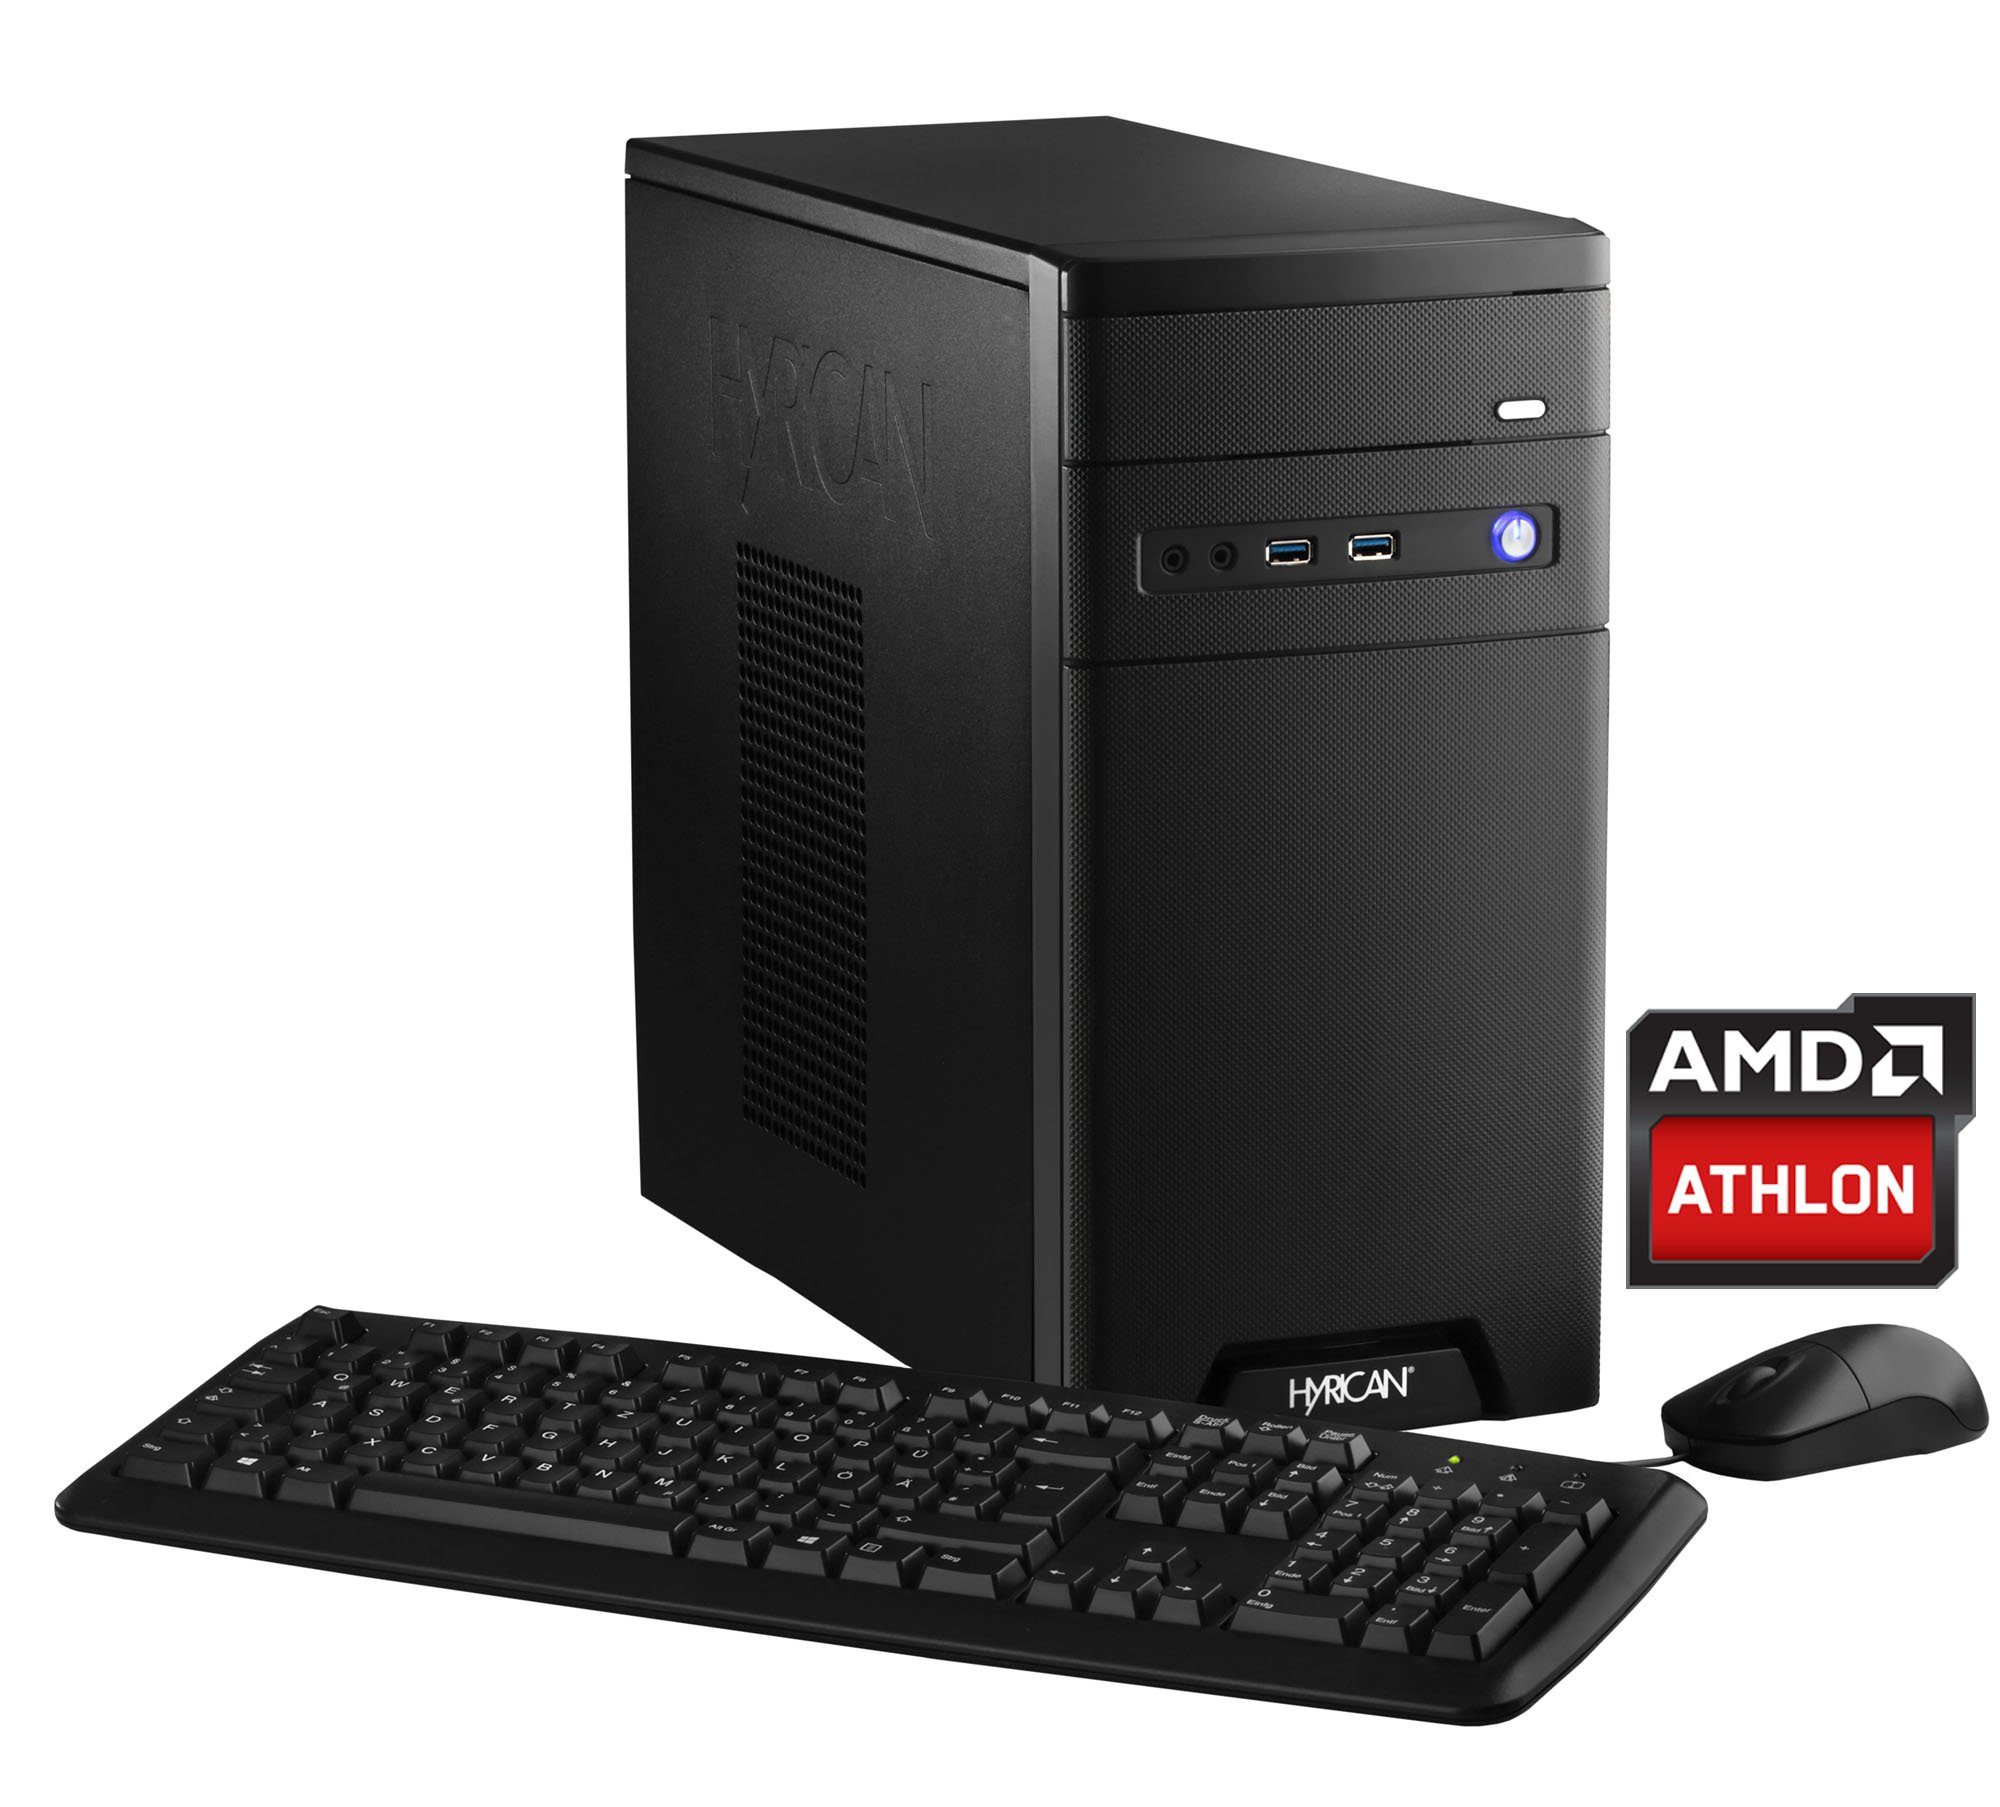 Hyrican PC AMD Athlon X4 860K, 8GB, 1TB, Geforce™ GTX 1050 »CyberGamer black 5352«